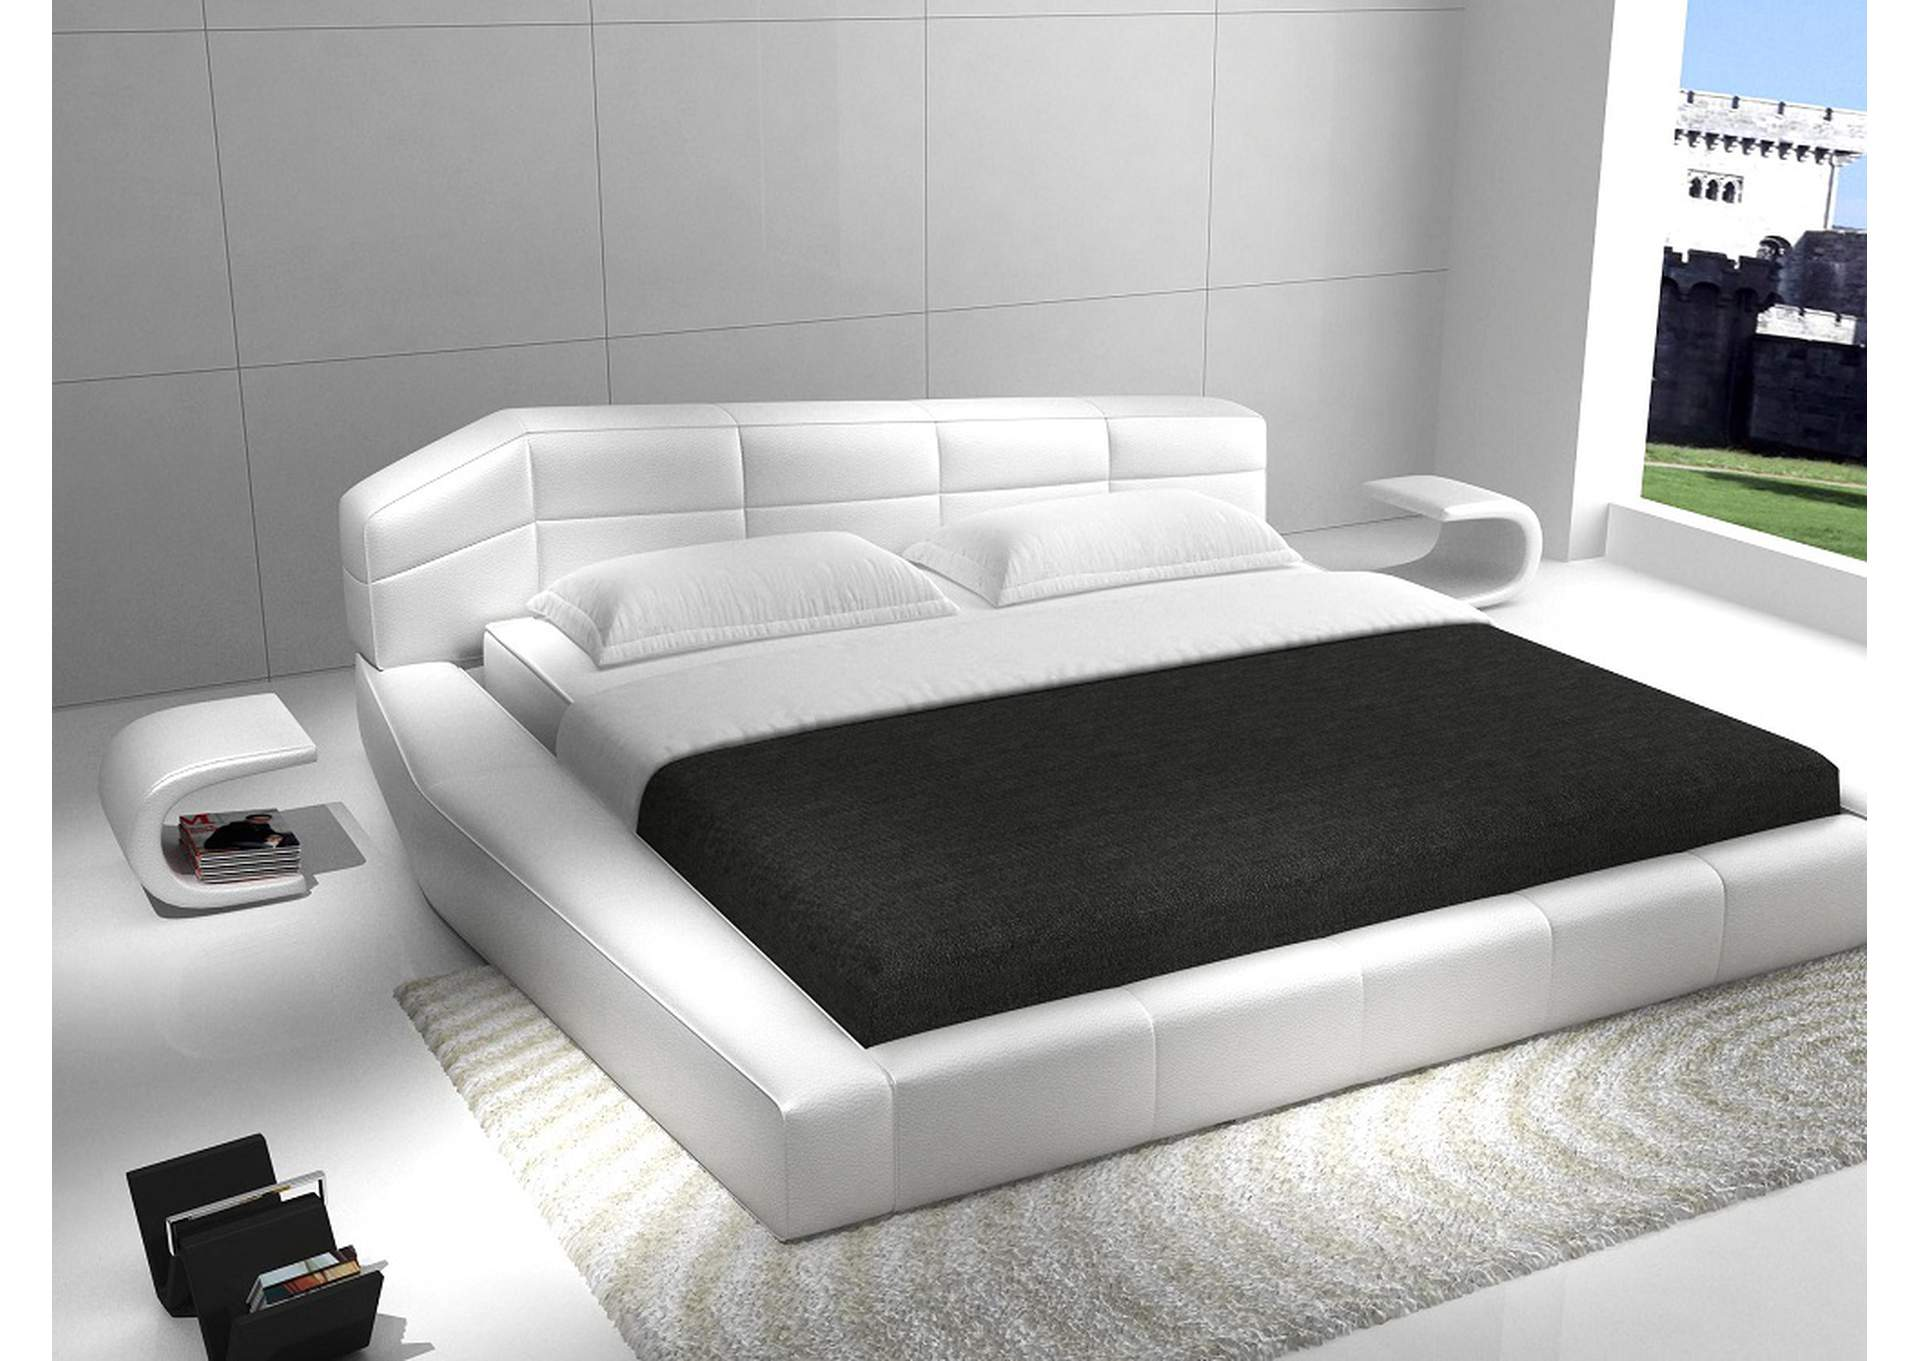 Dream Queen Size Bed,J&M Furniture